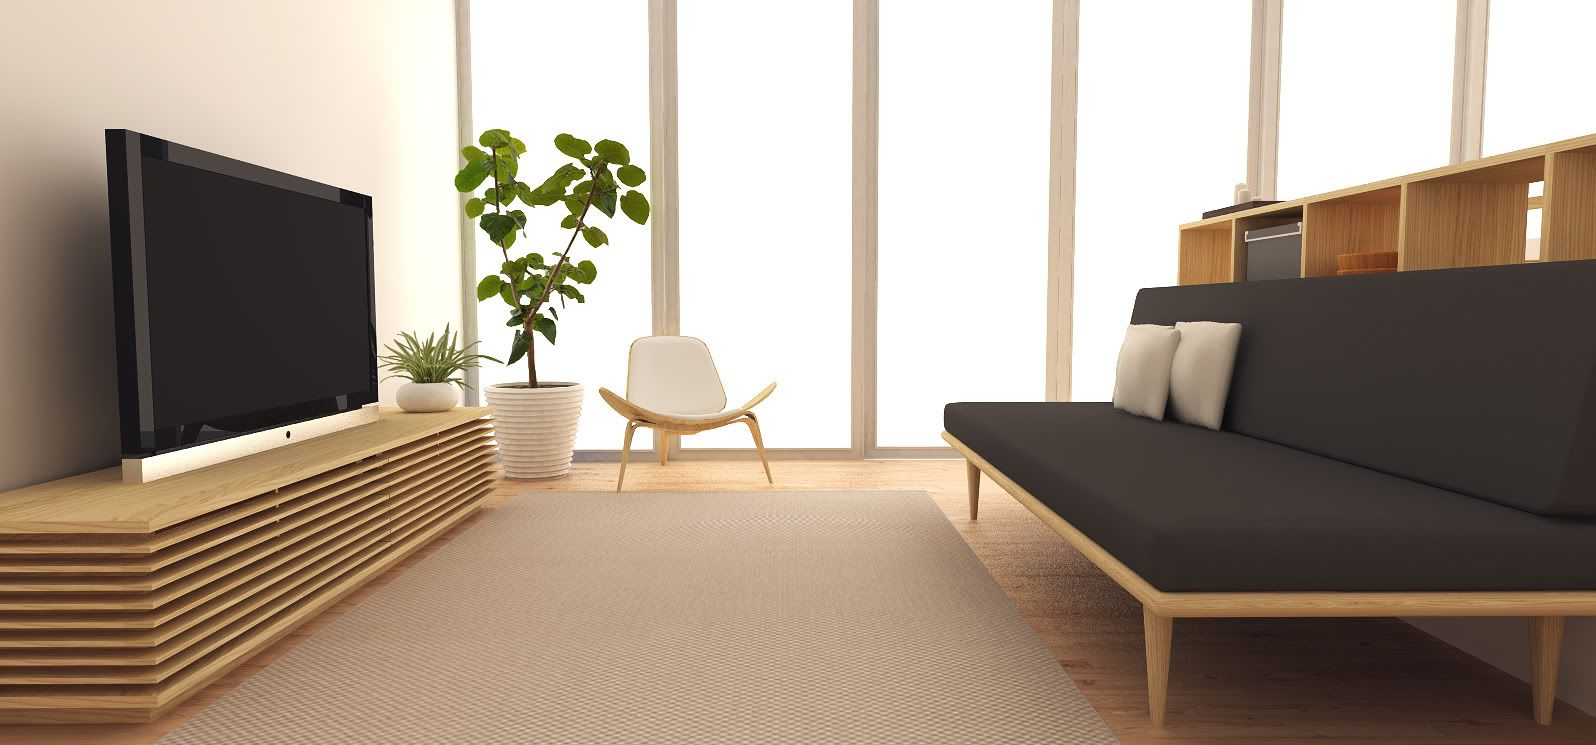 Minimalist tv console simple chair durable carpet and for Minimalist living space